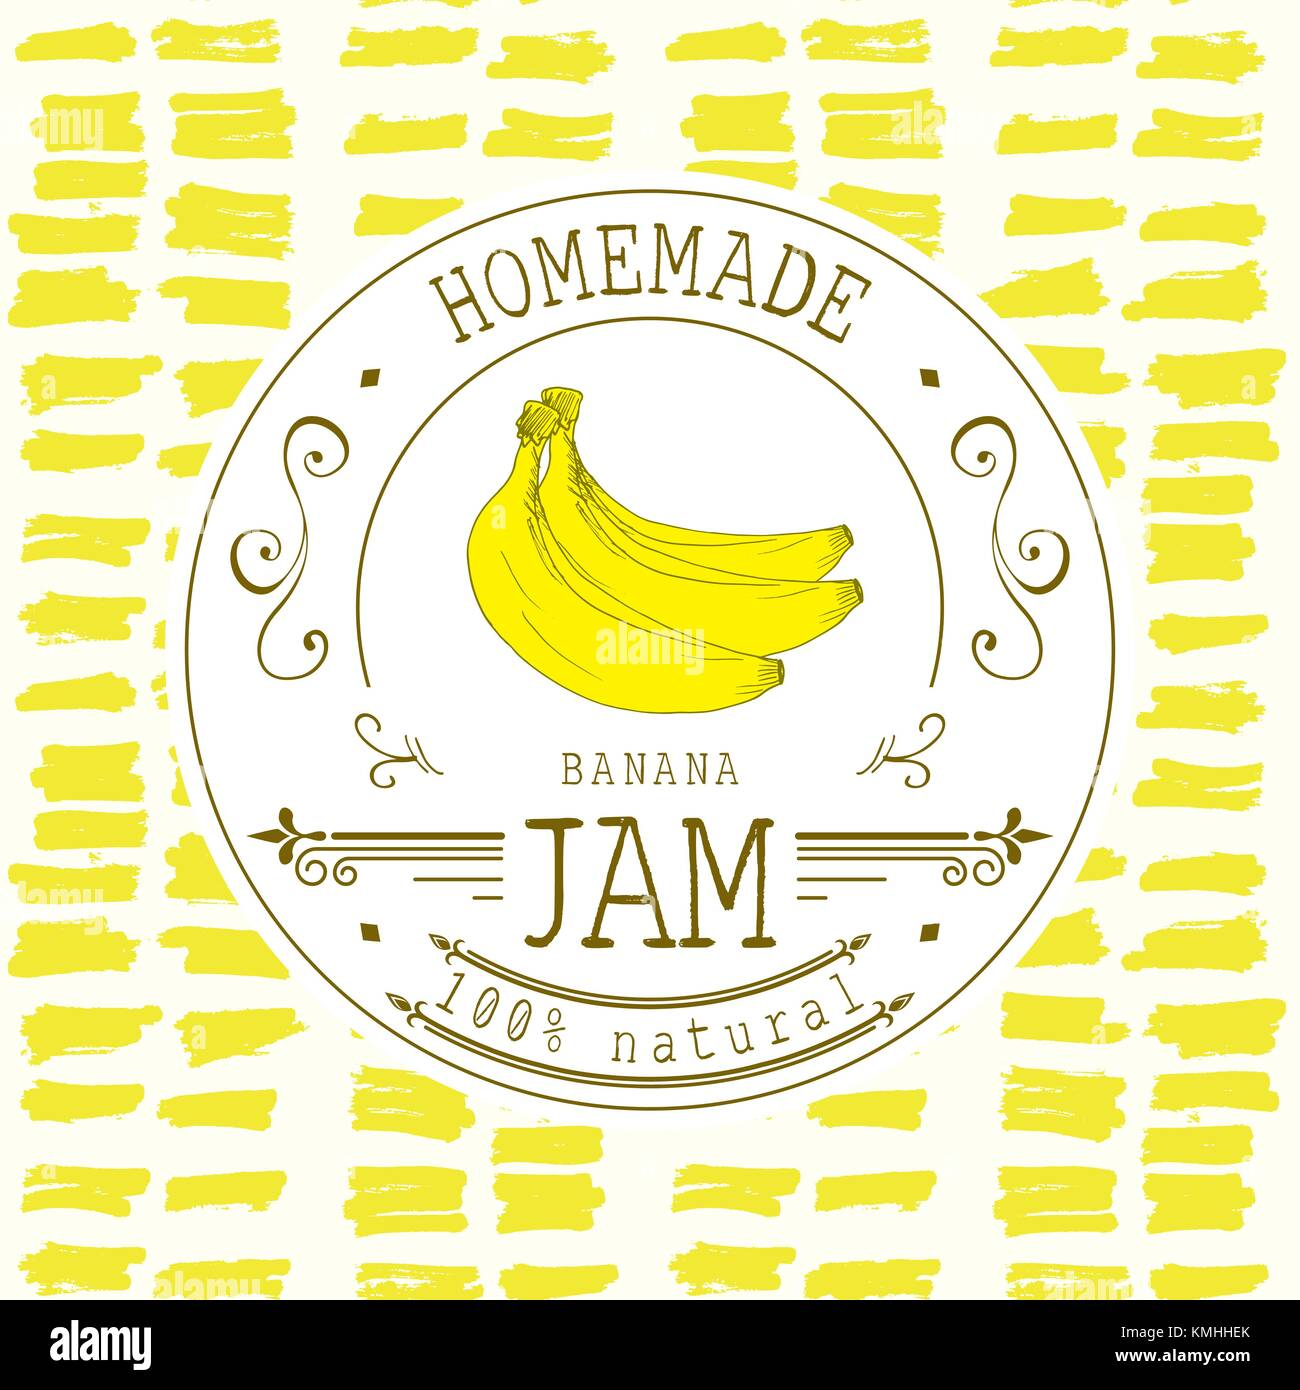 jam label design template for banana dessert product with hand